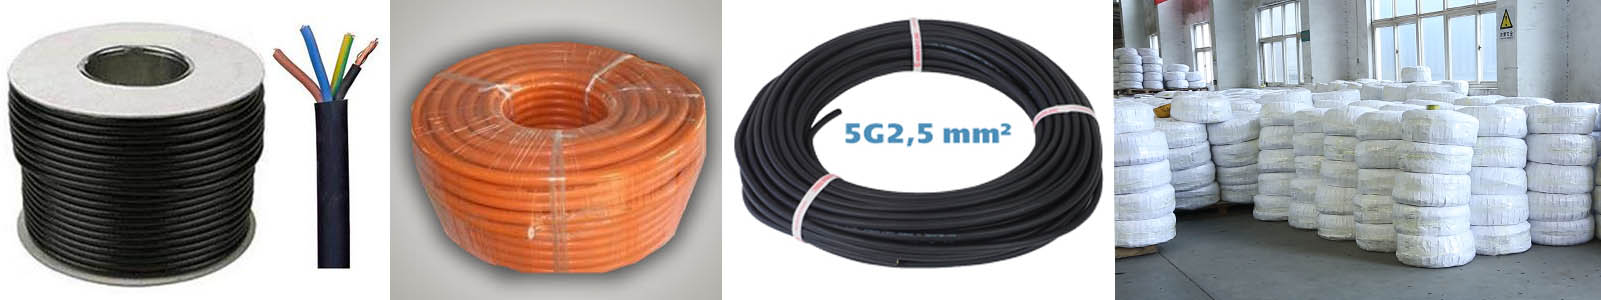 rubber fiber hybrid cable package